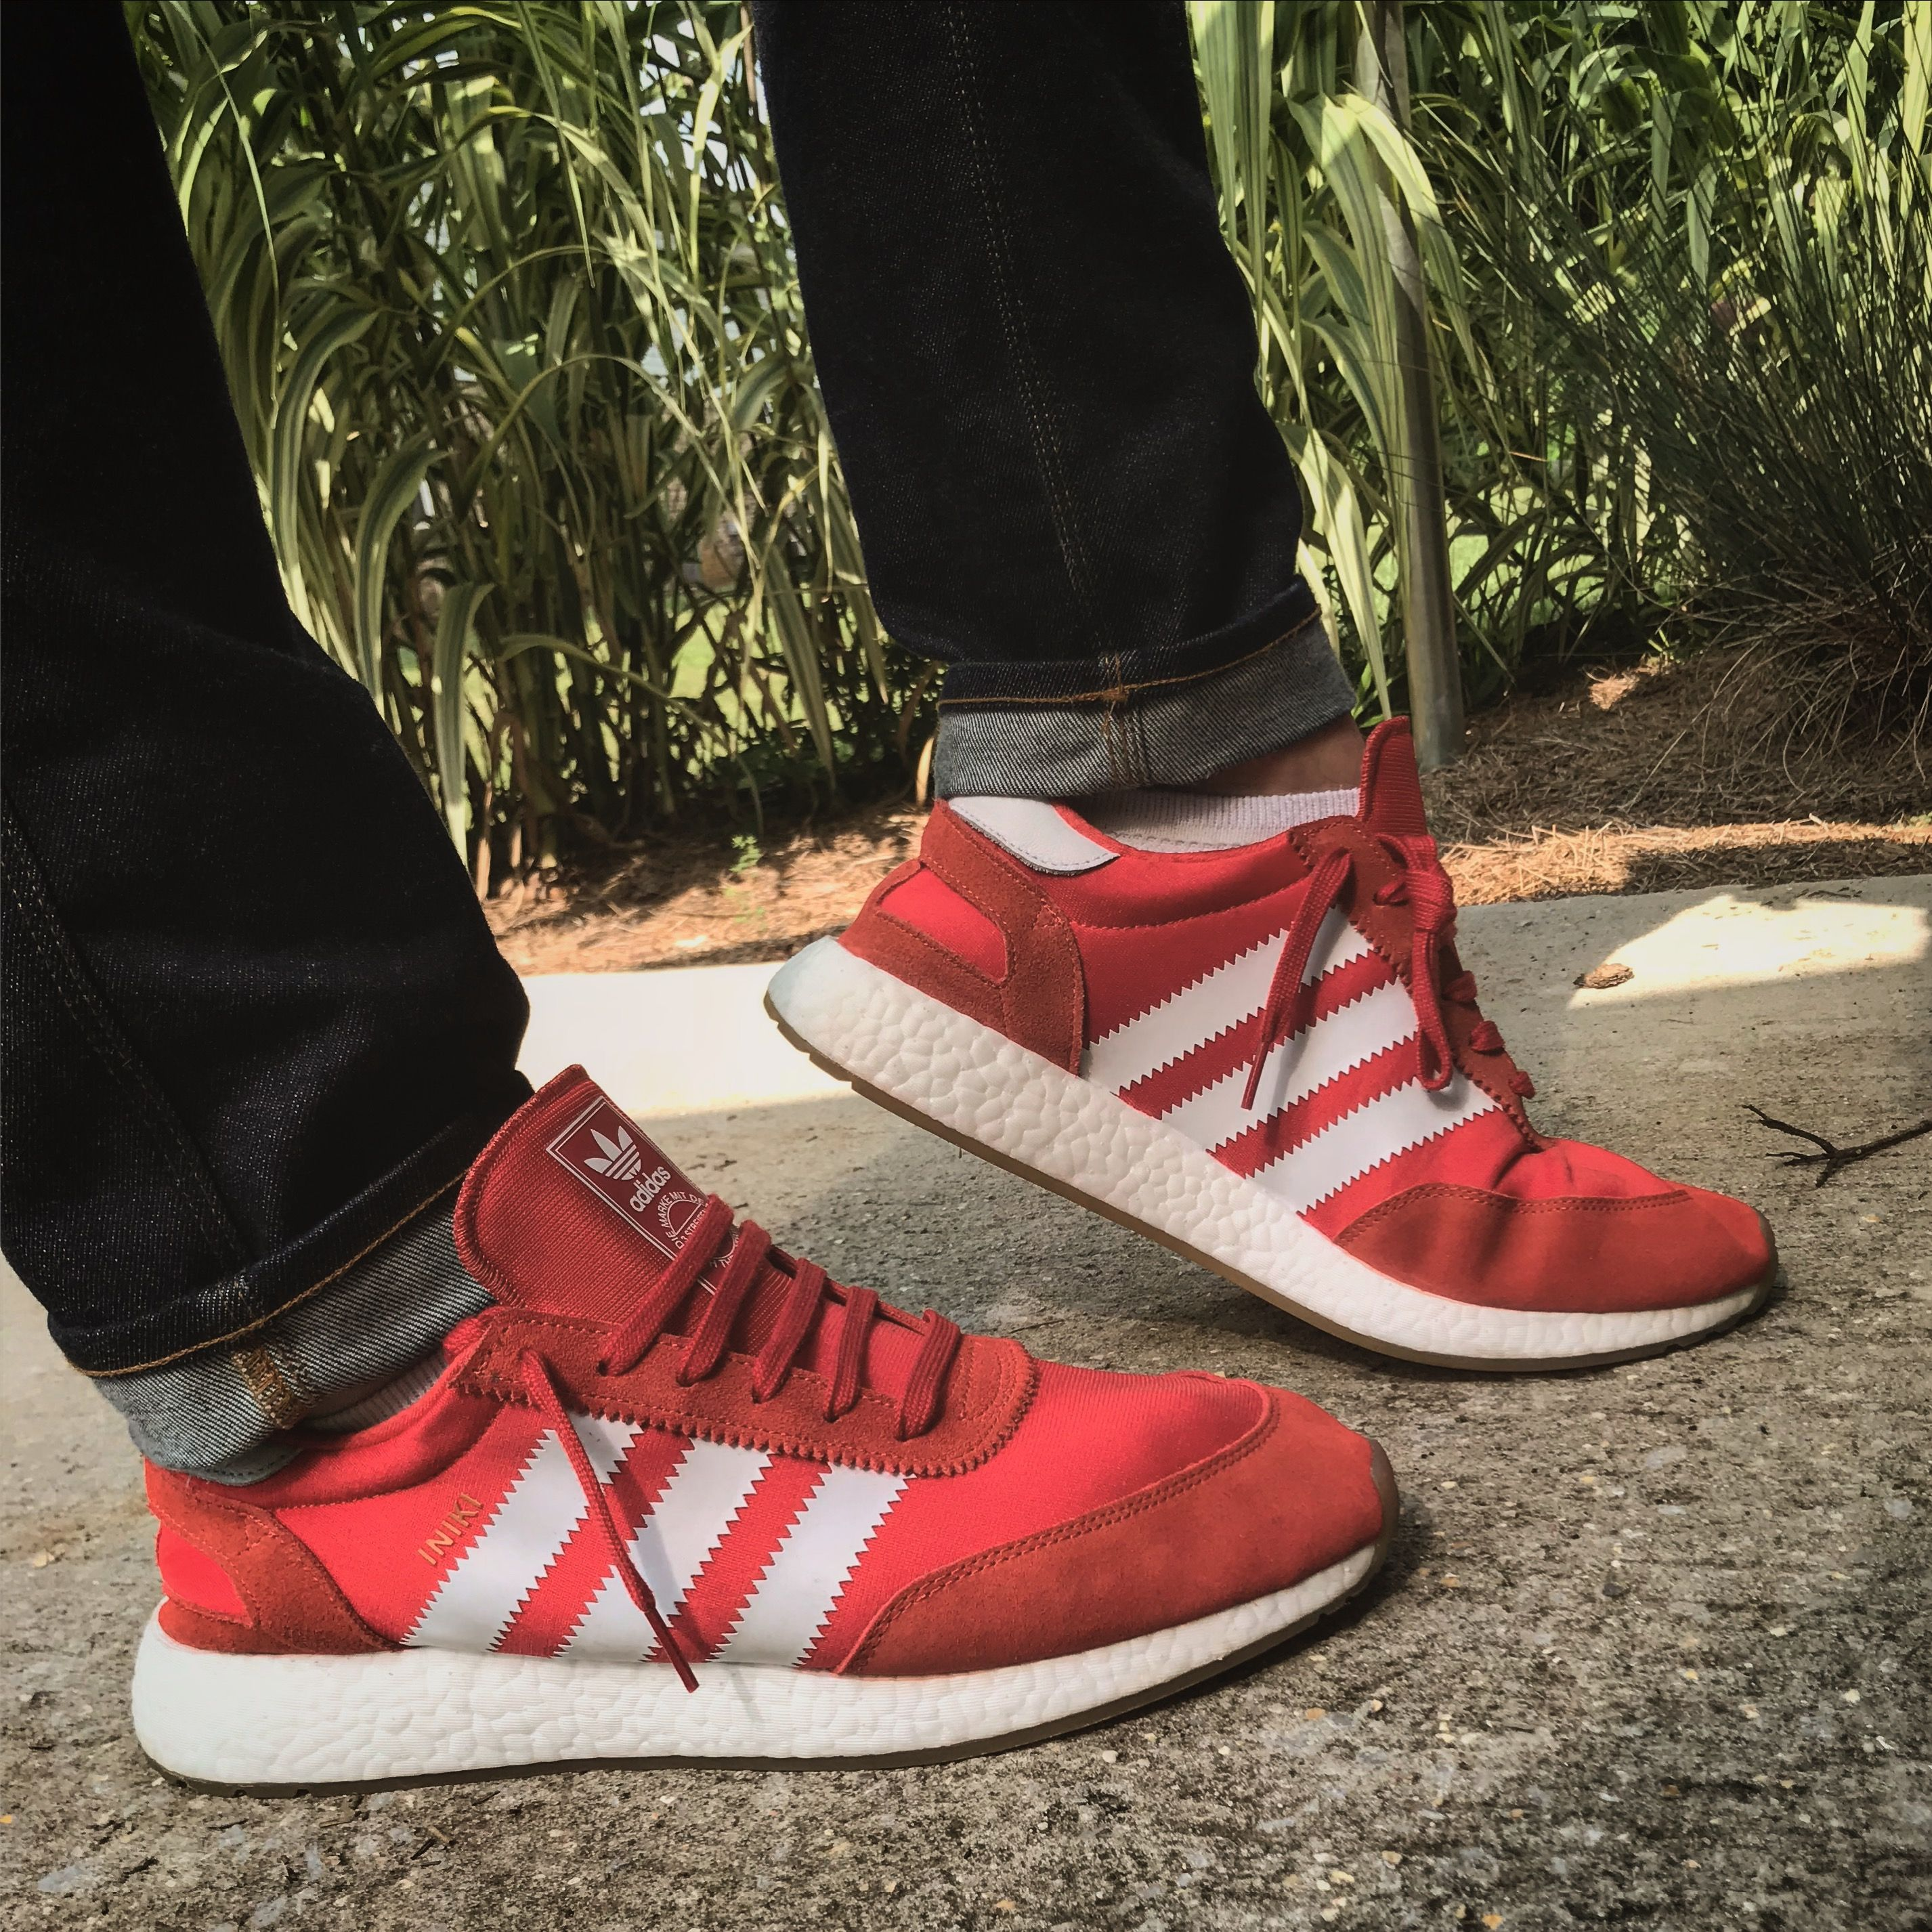 adidas iniki runners in red